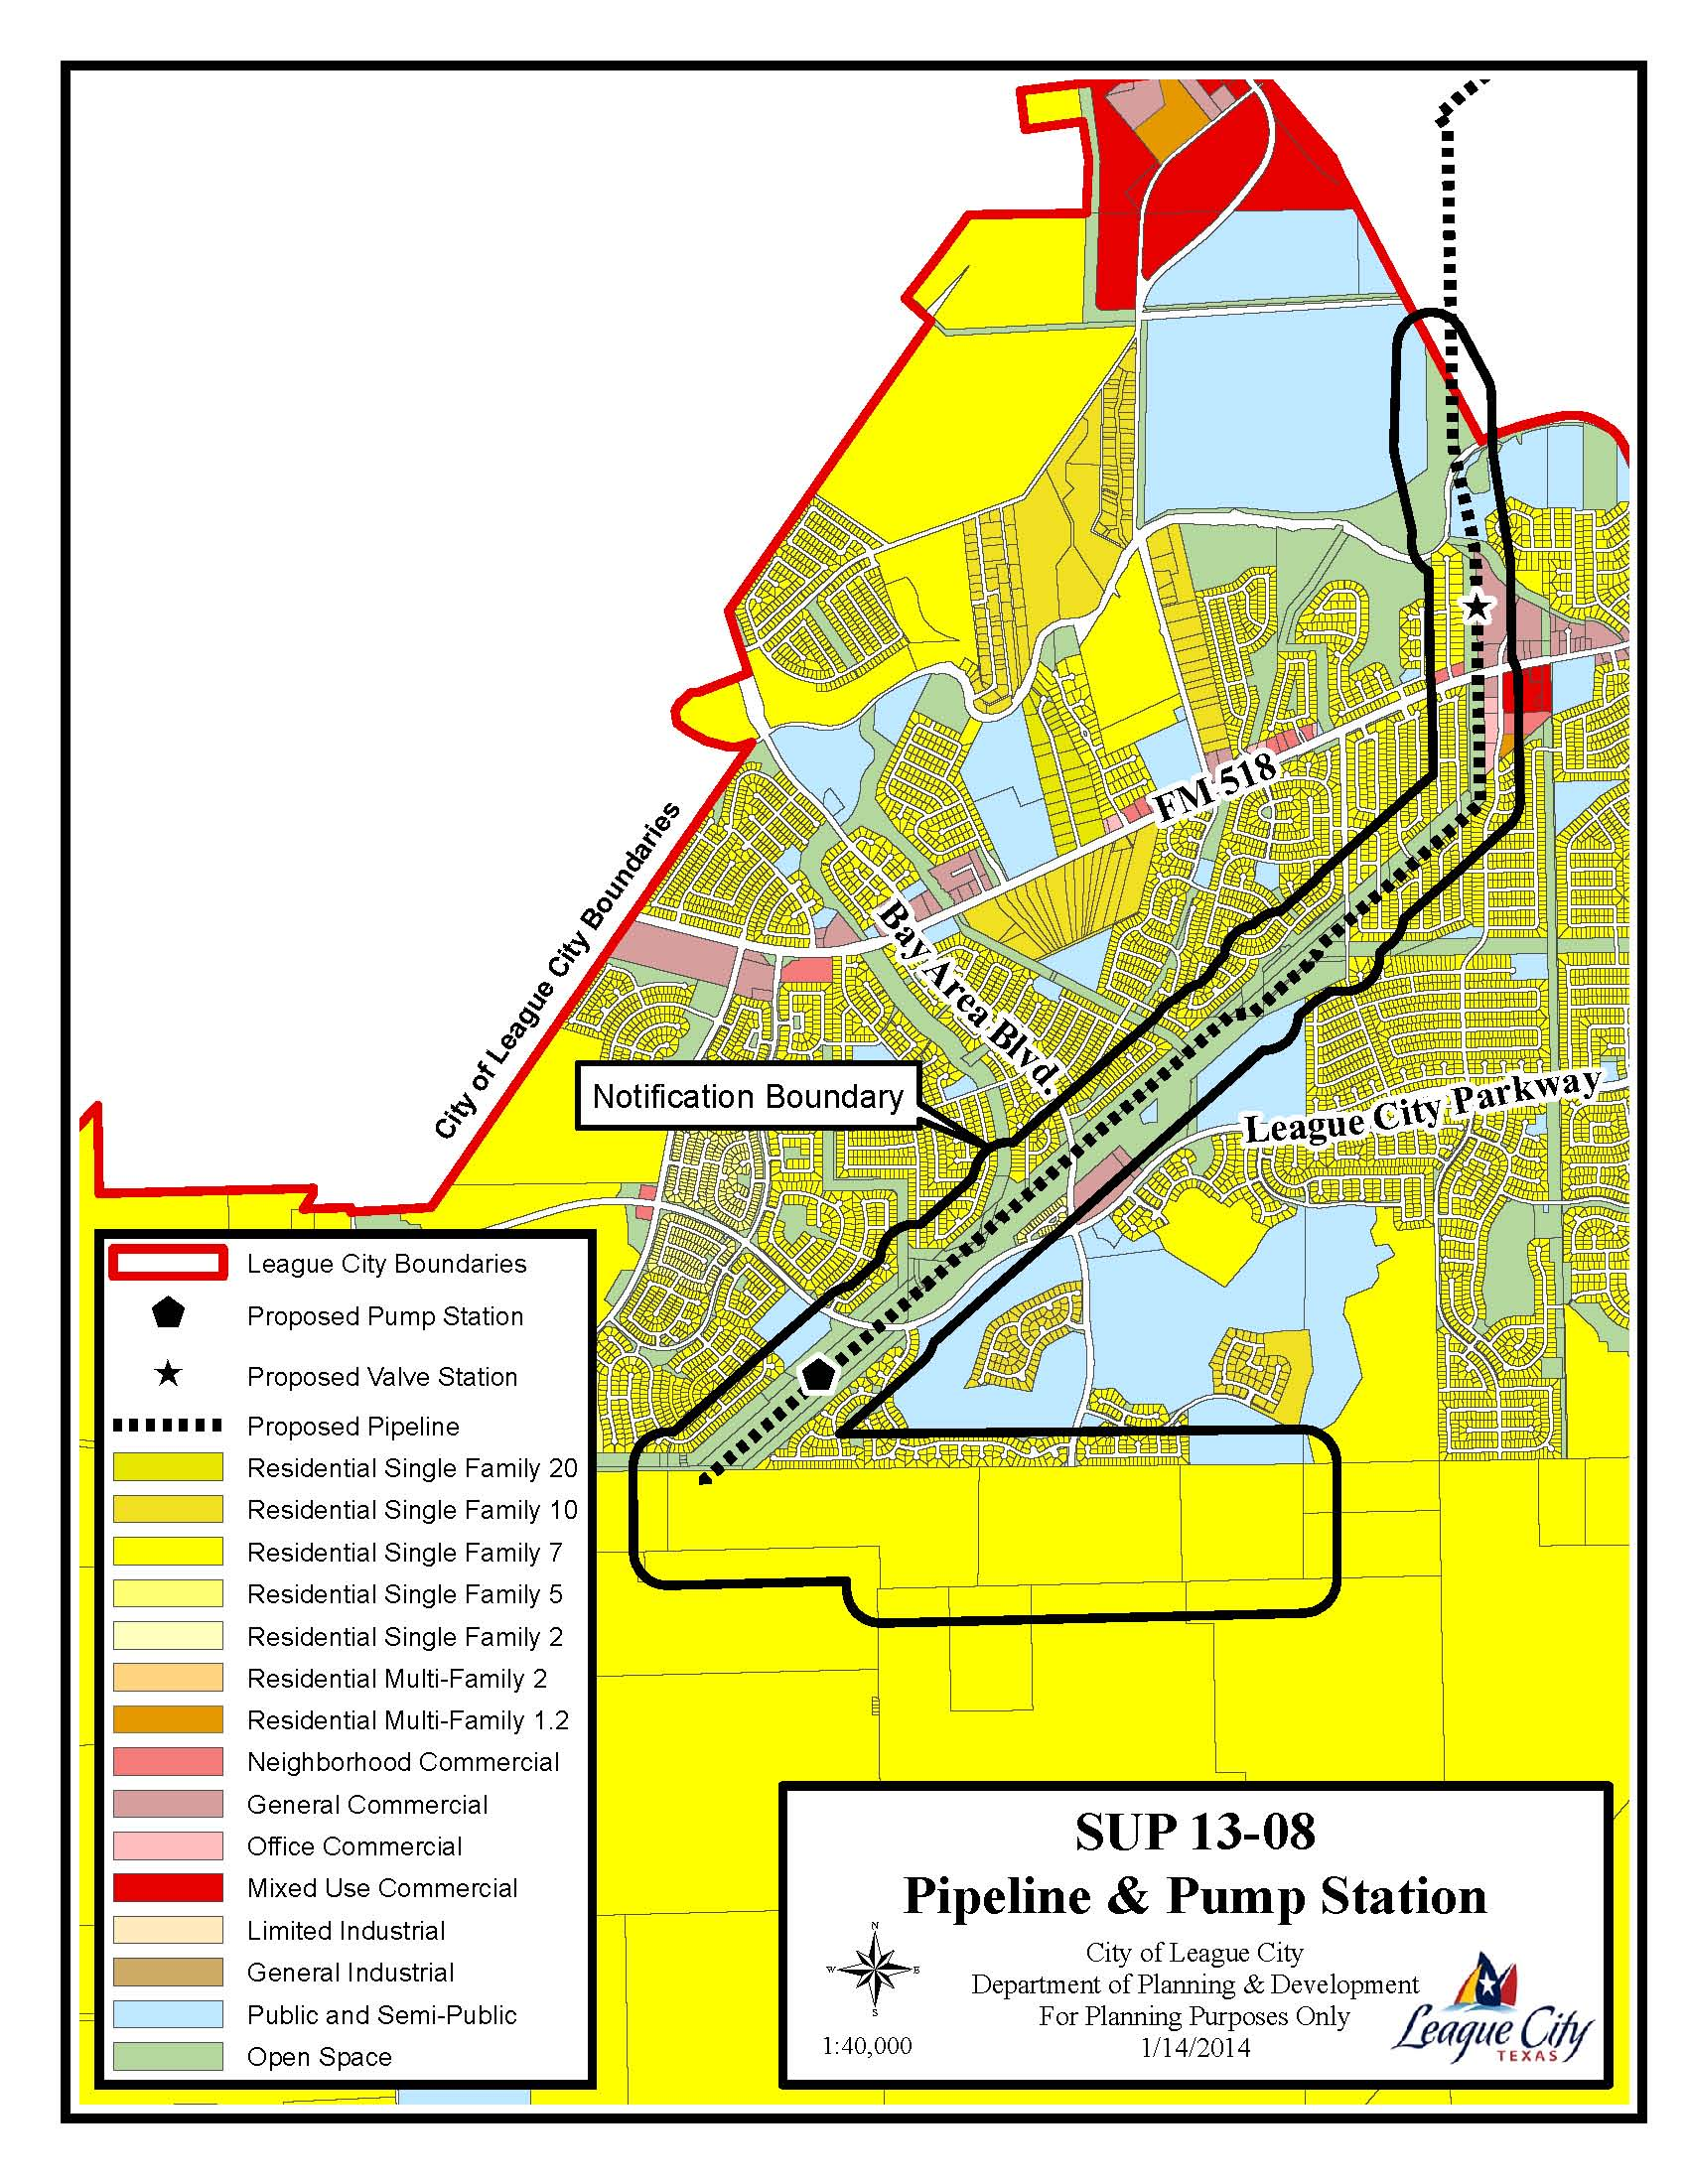 SUP13-08 Zoning Map